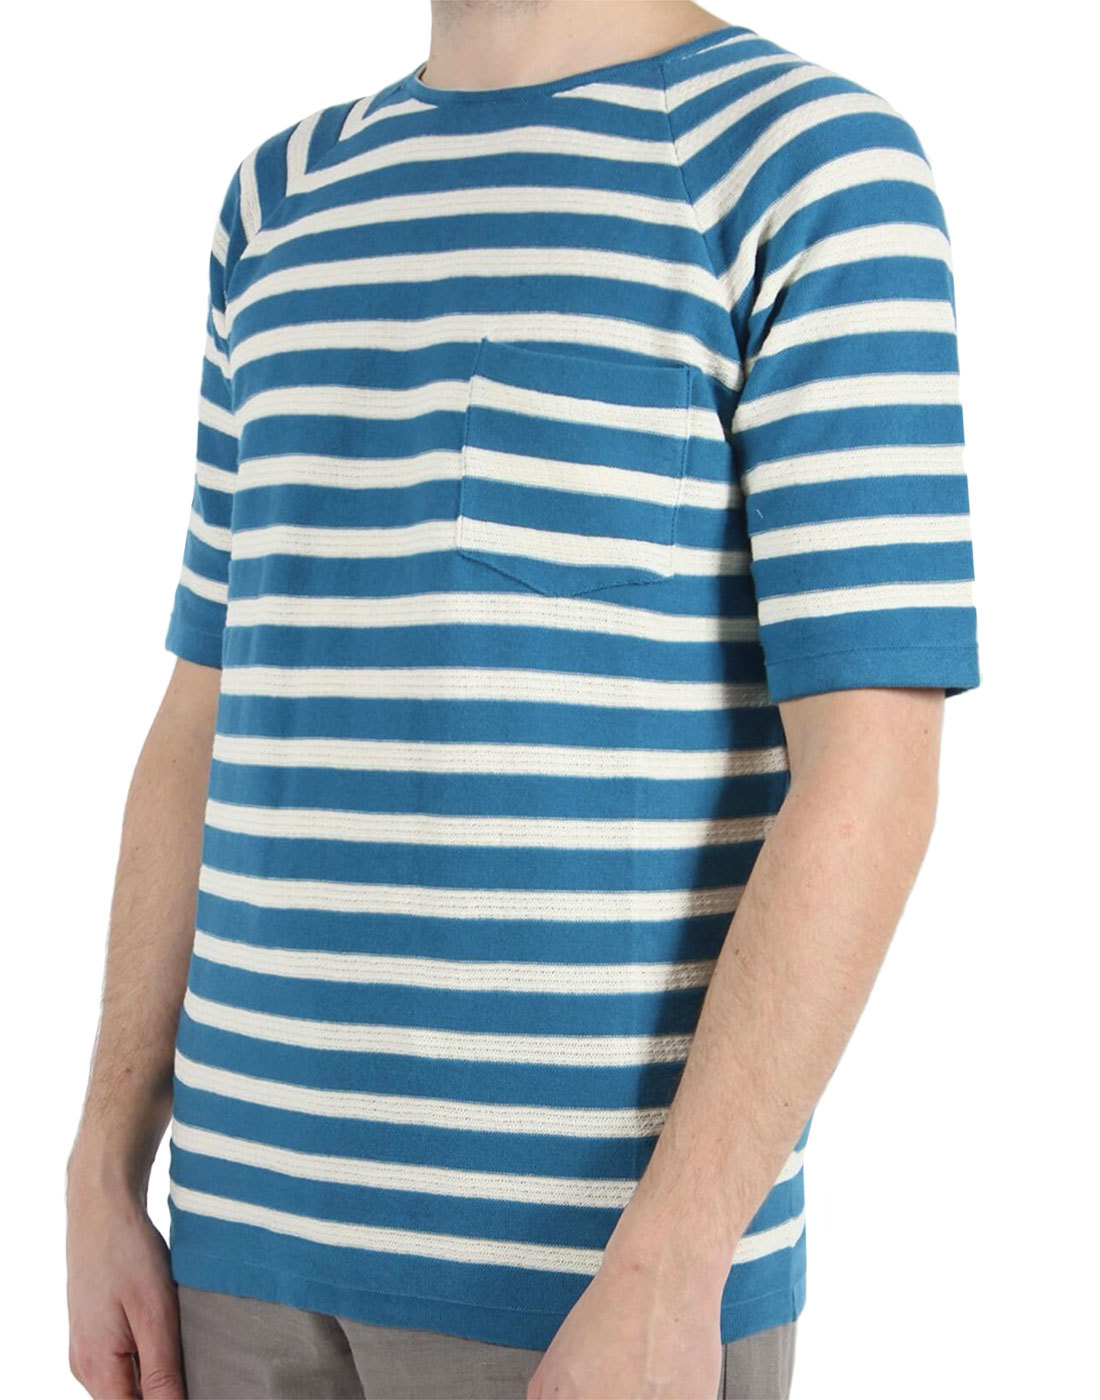 AFIELD Men's Retro Mod Striped Knitted T-Shirt - B